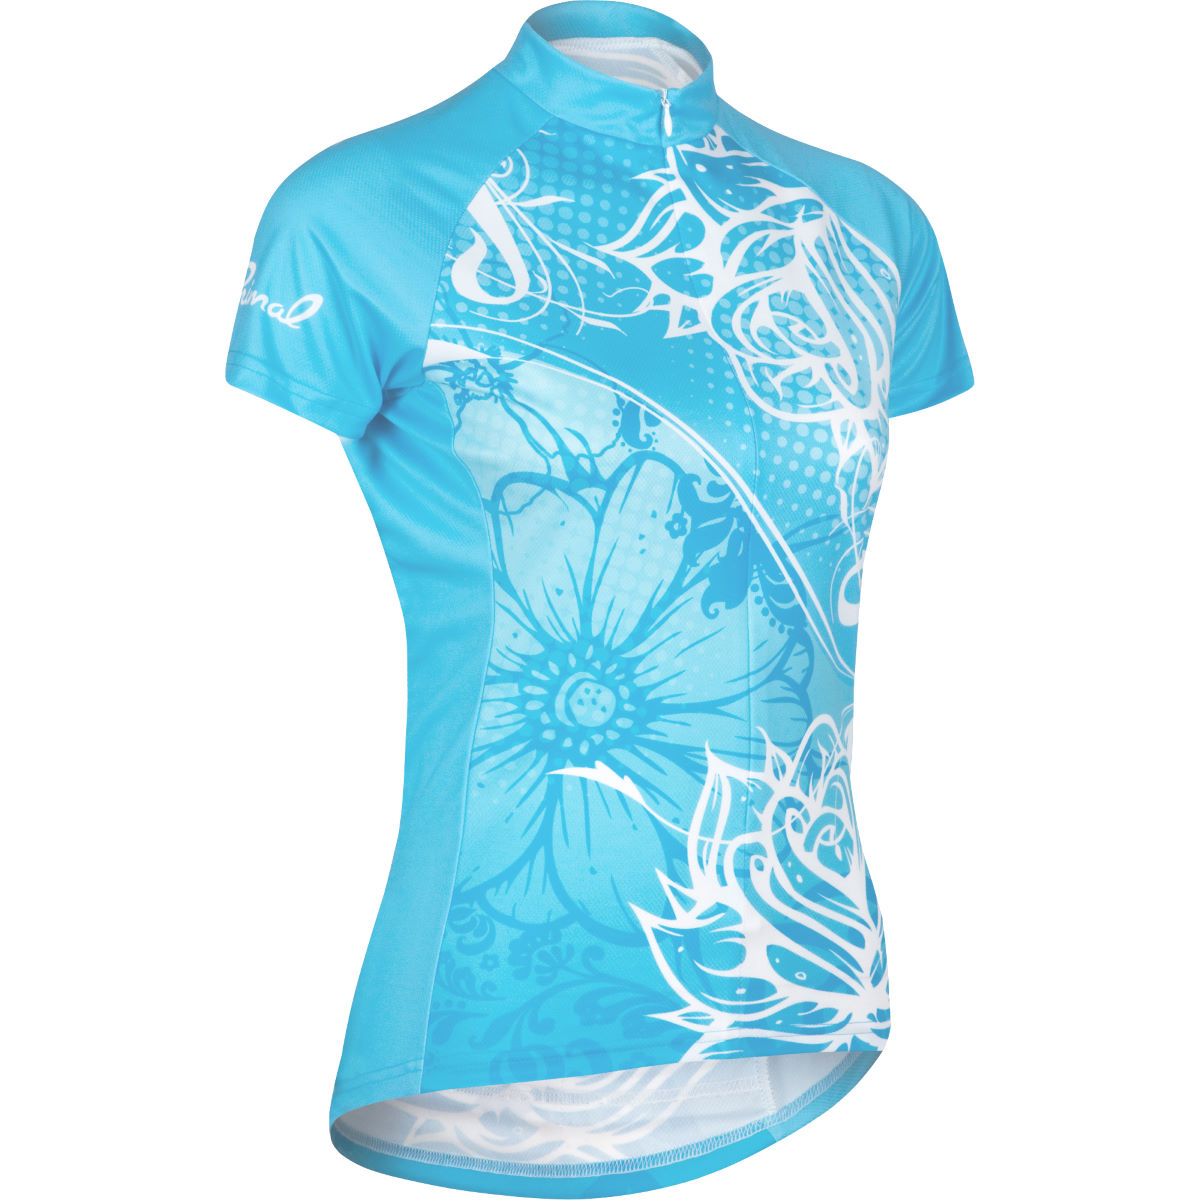 Primal Women's Florence Jersey - Extra Extra Large Blue/White